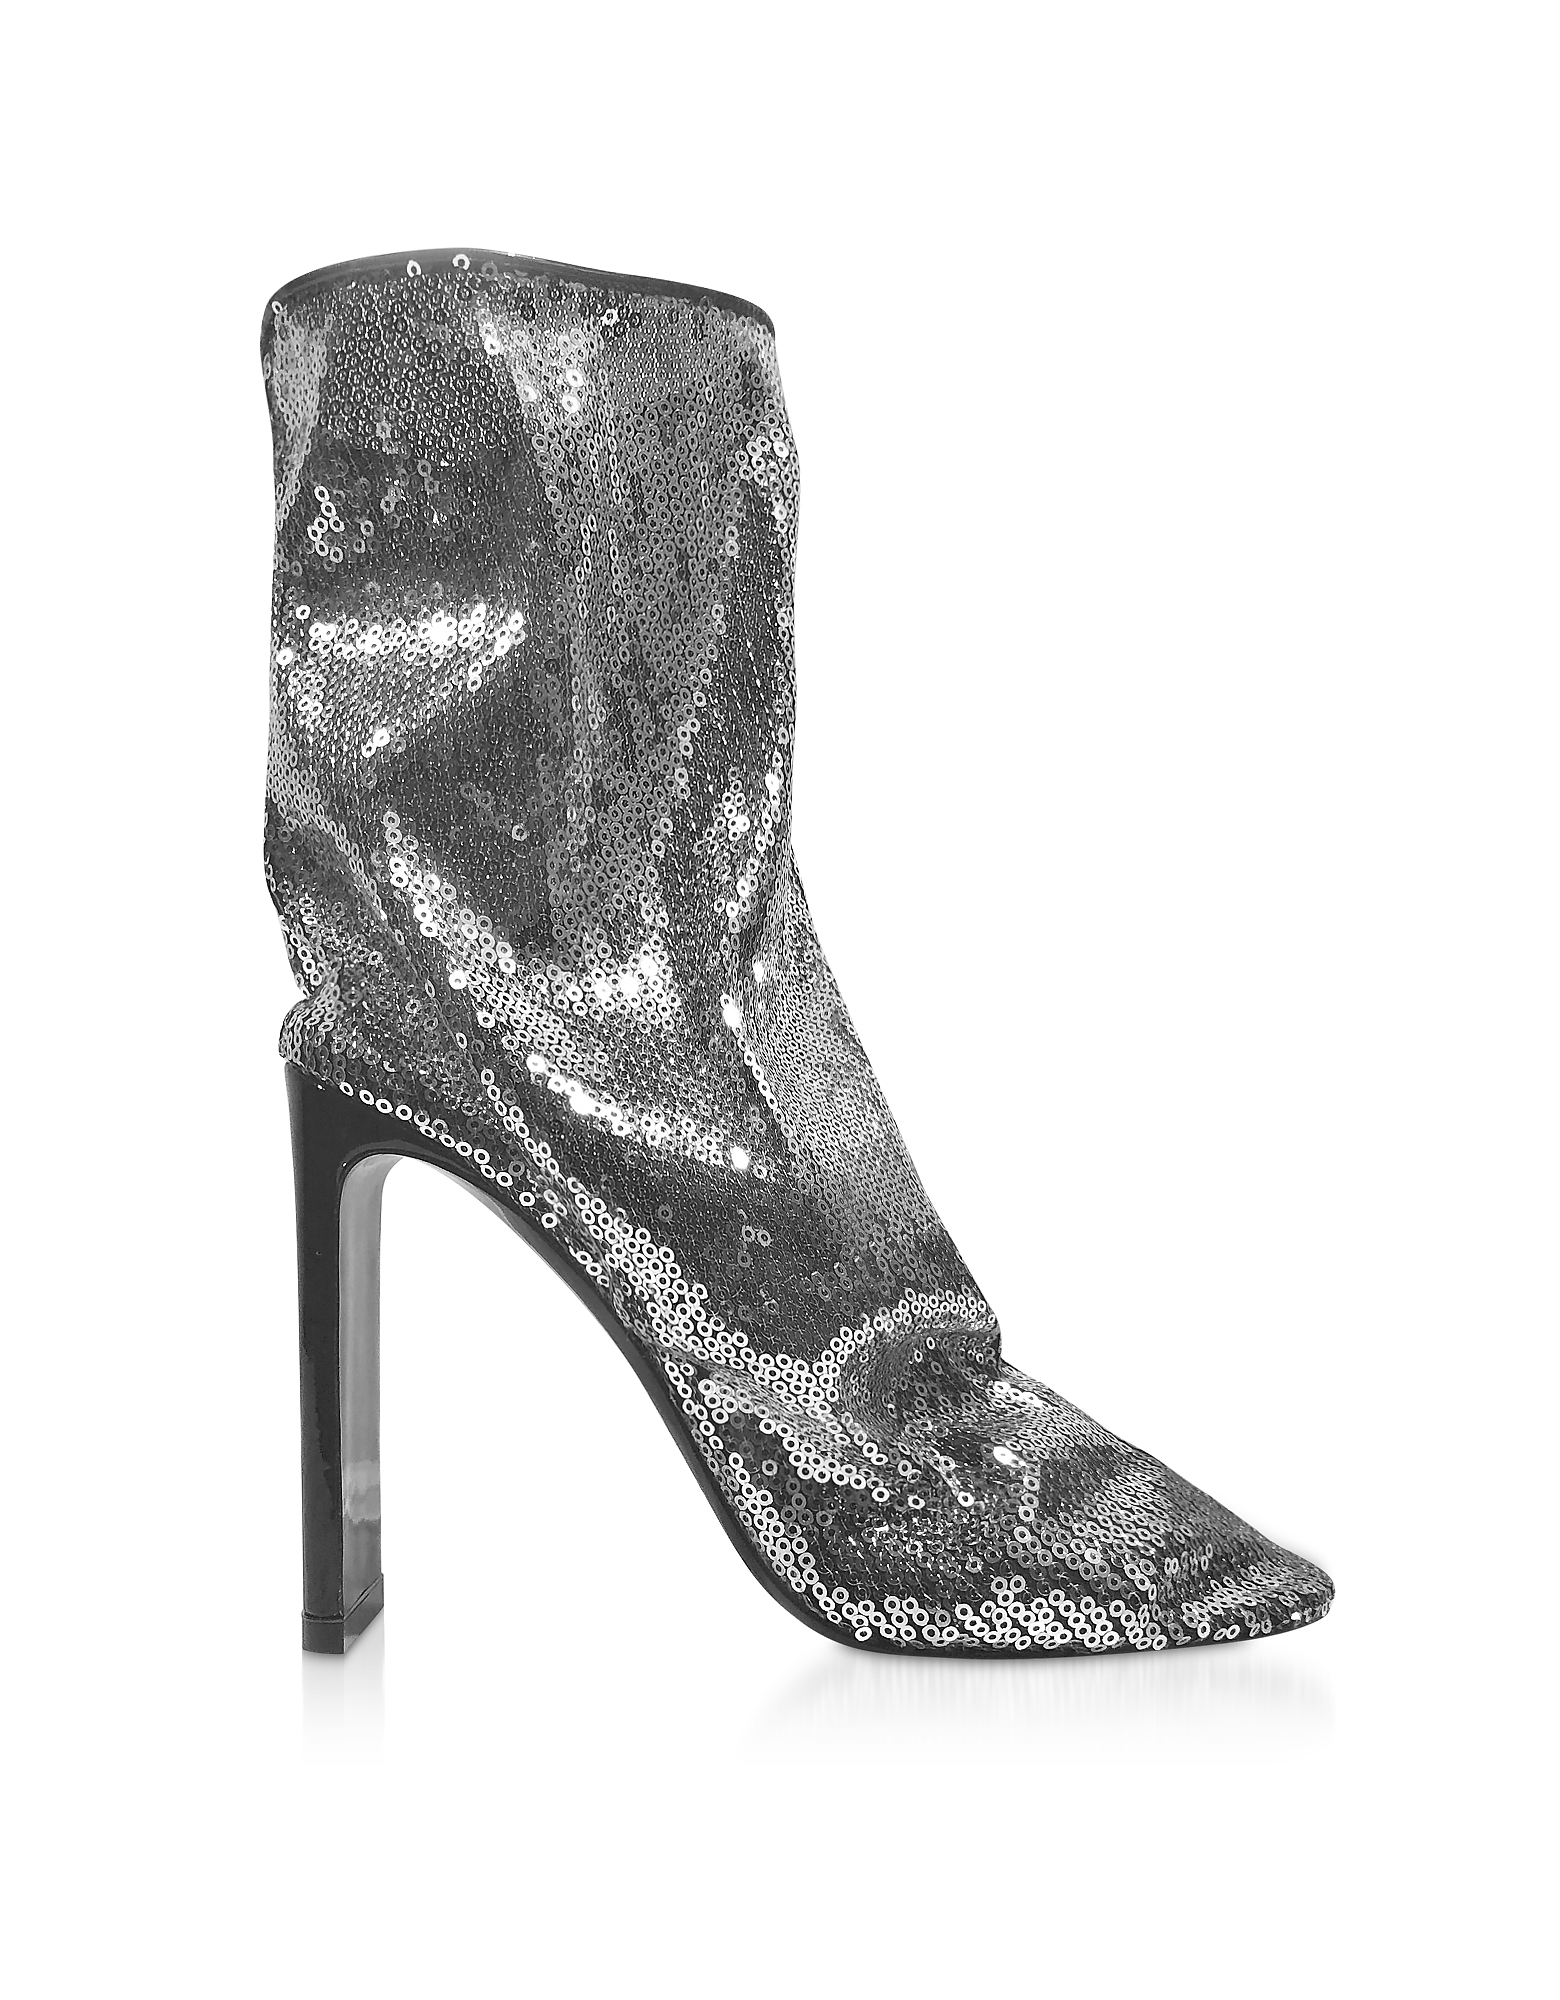 Silver 105mm D'Arcy Ankle Boots